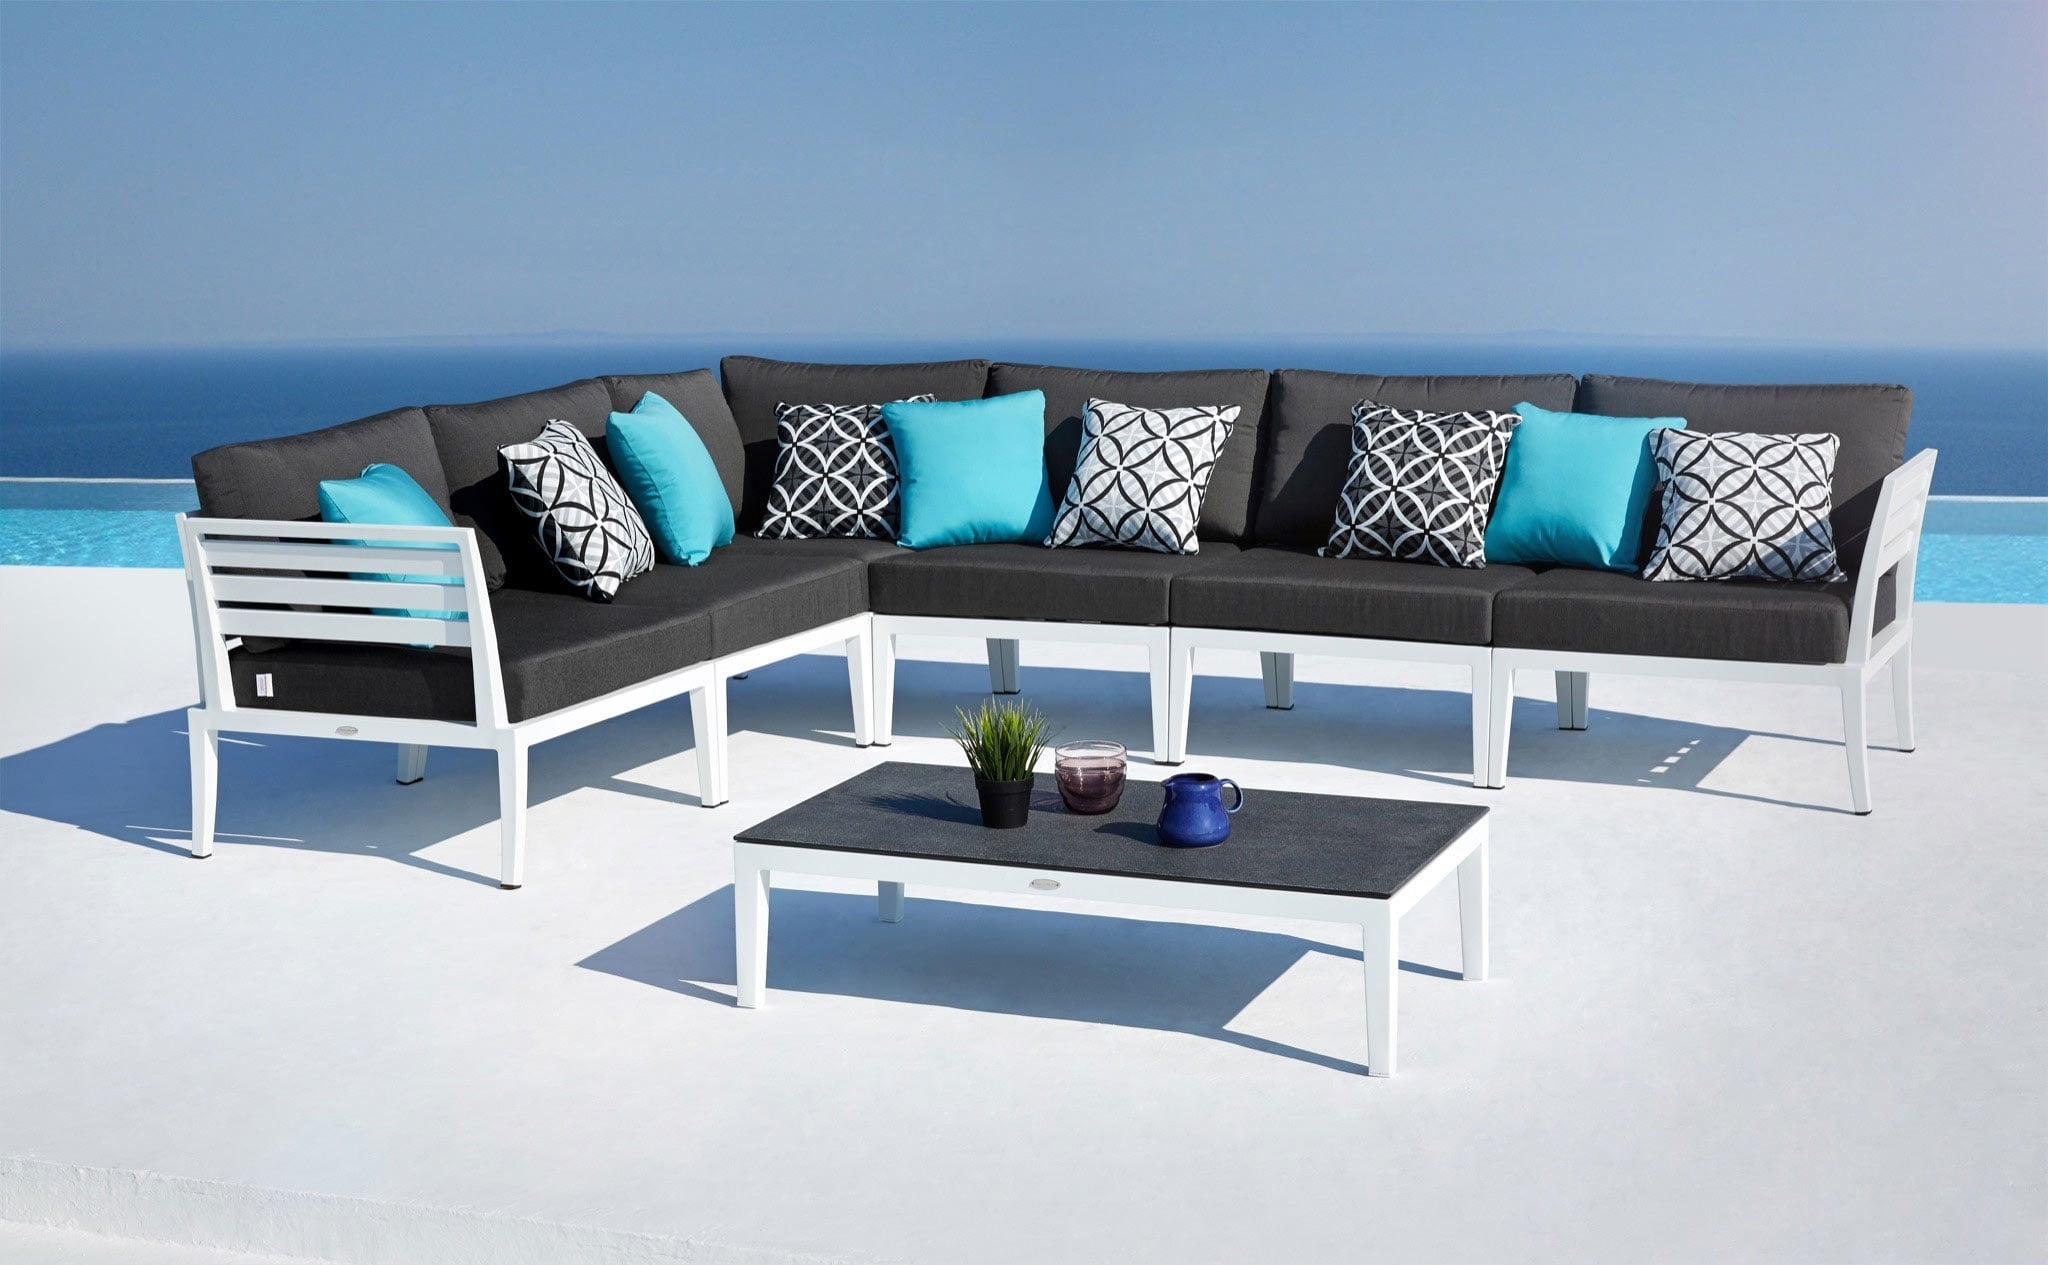 Modern Outdoor Lounge Furniture Set Joins Oceanweave Collection Within Modern Outdoor Lounge Furniture Best Modern Outdoor Lounge Furniture